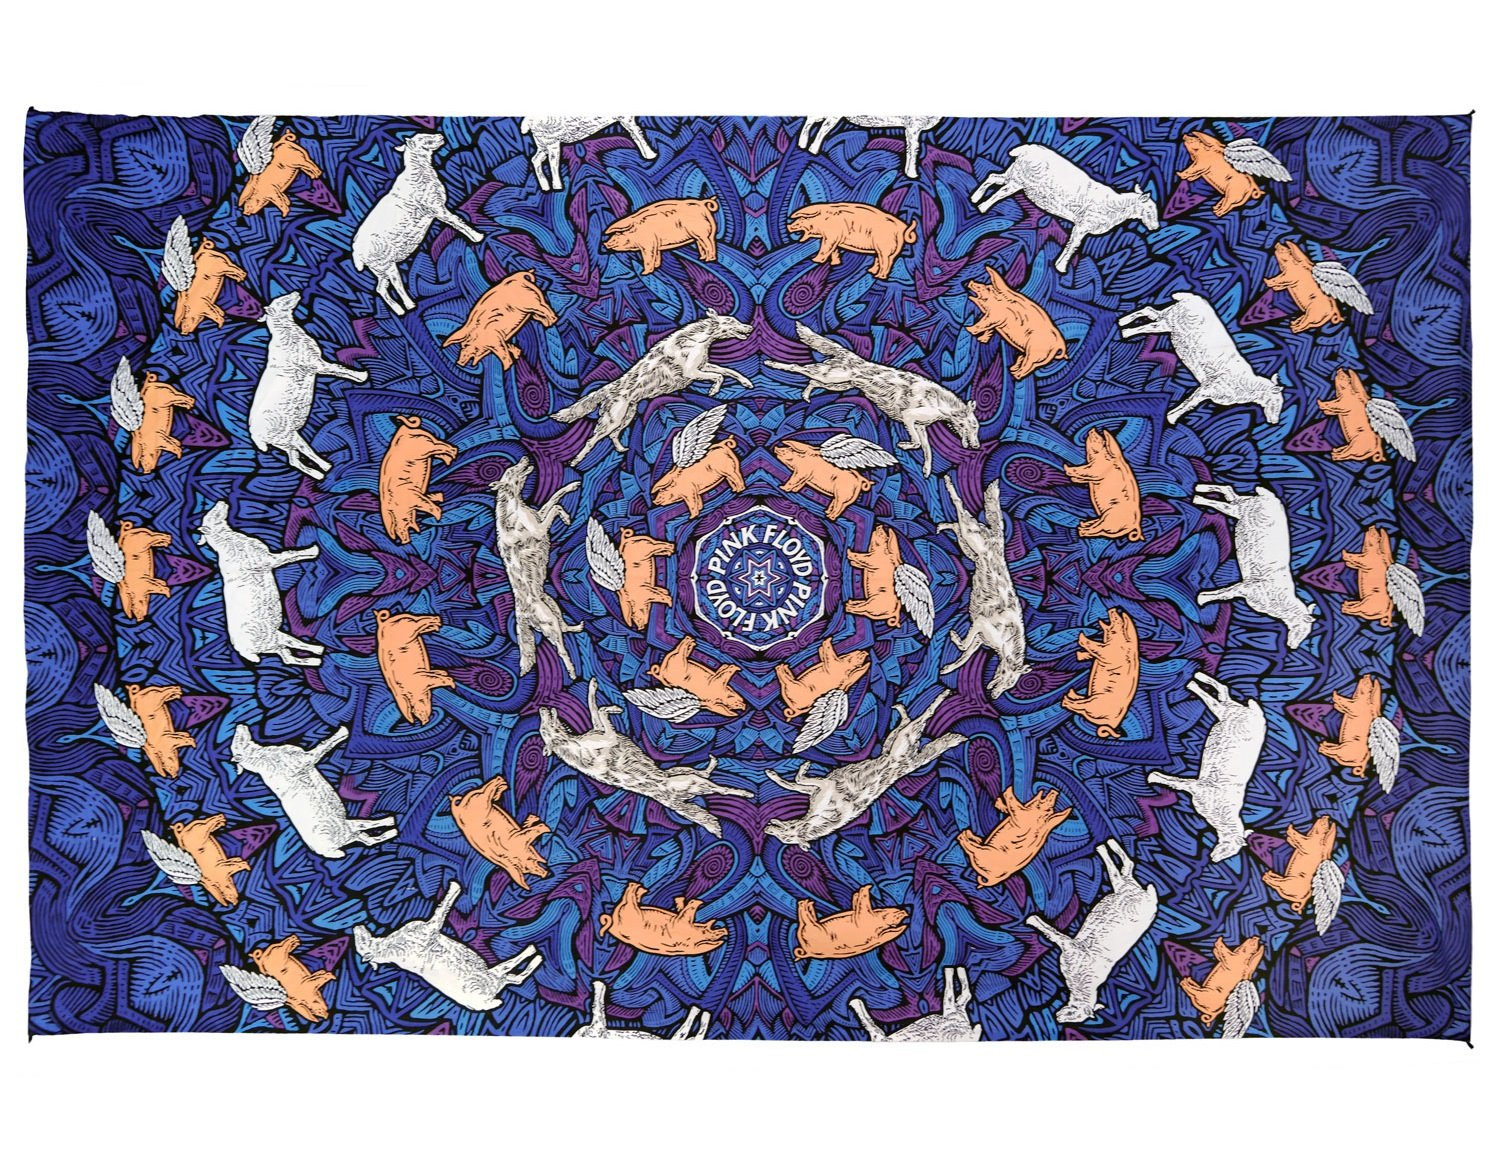 Sunshine Joy 3D Pink Floyd Animals Tapestry Psychedelic Wall Art Huge 60x90 Inches by Sunshine Joy